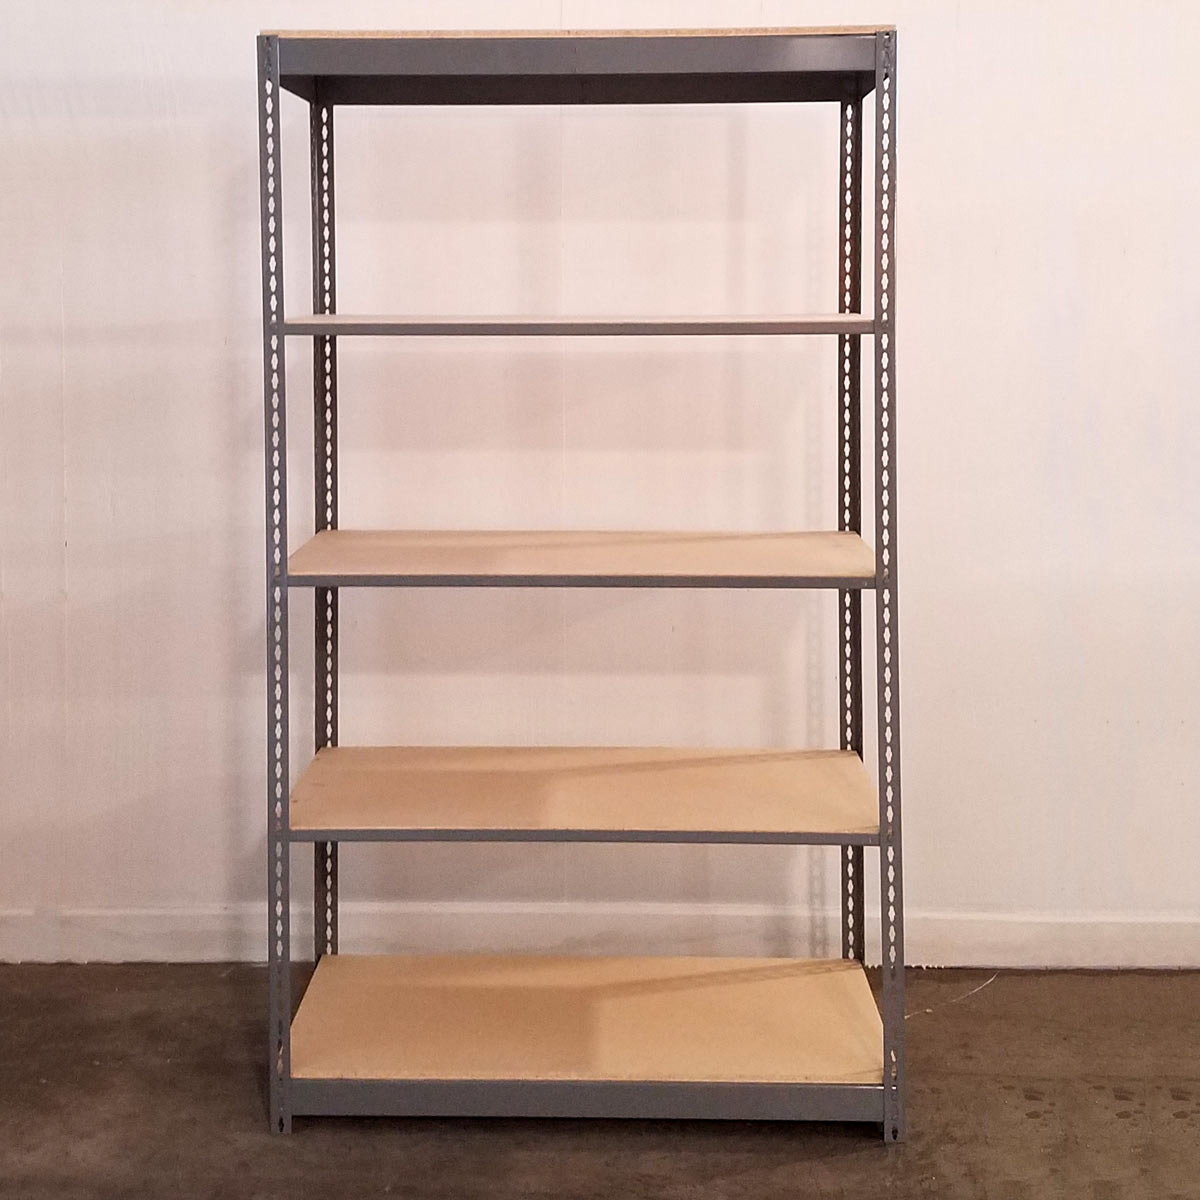 Fresno Rack And Shelving With Well Known Fresno Standard Bookcases (View 3 of 20)